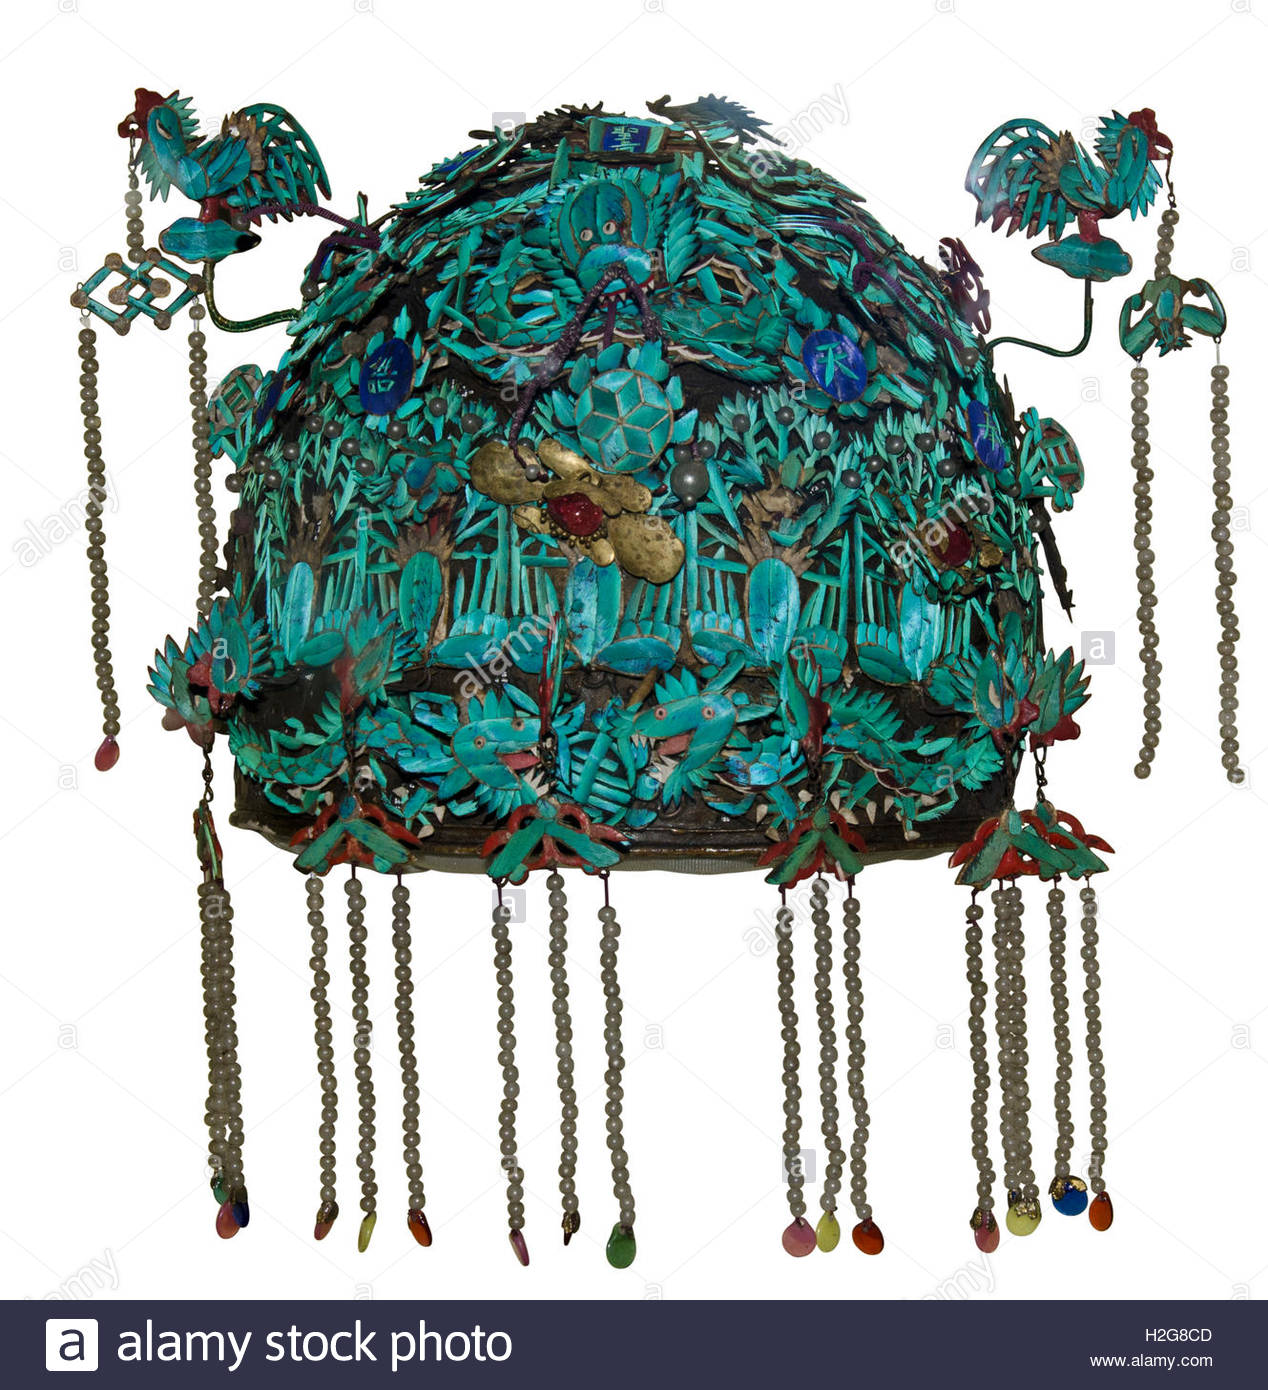 Kingfisher feather headdress from China, Qing Dynasty 1644-1911, play album leaf.  Most sought after feathers came - Stock Image